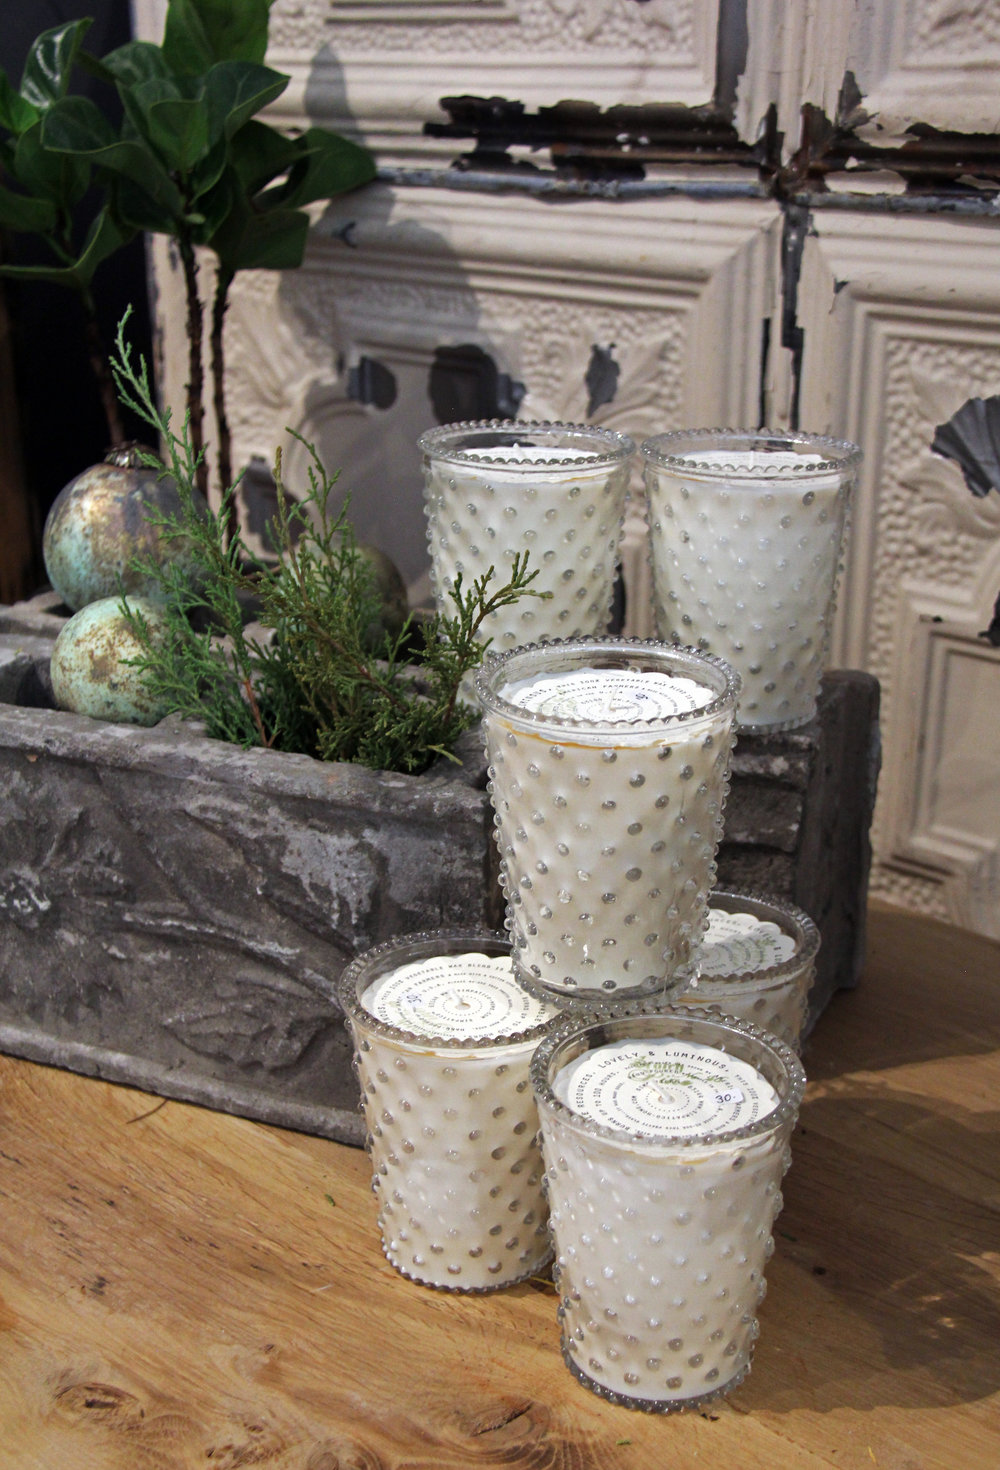 Fern scented hobnail candles…good smells and good decor!